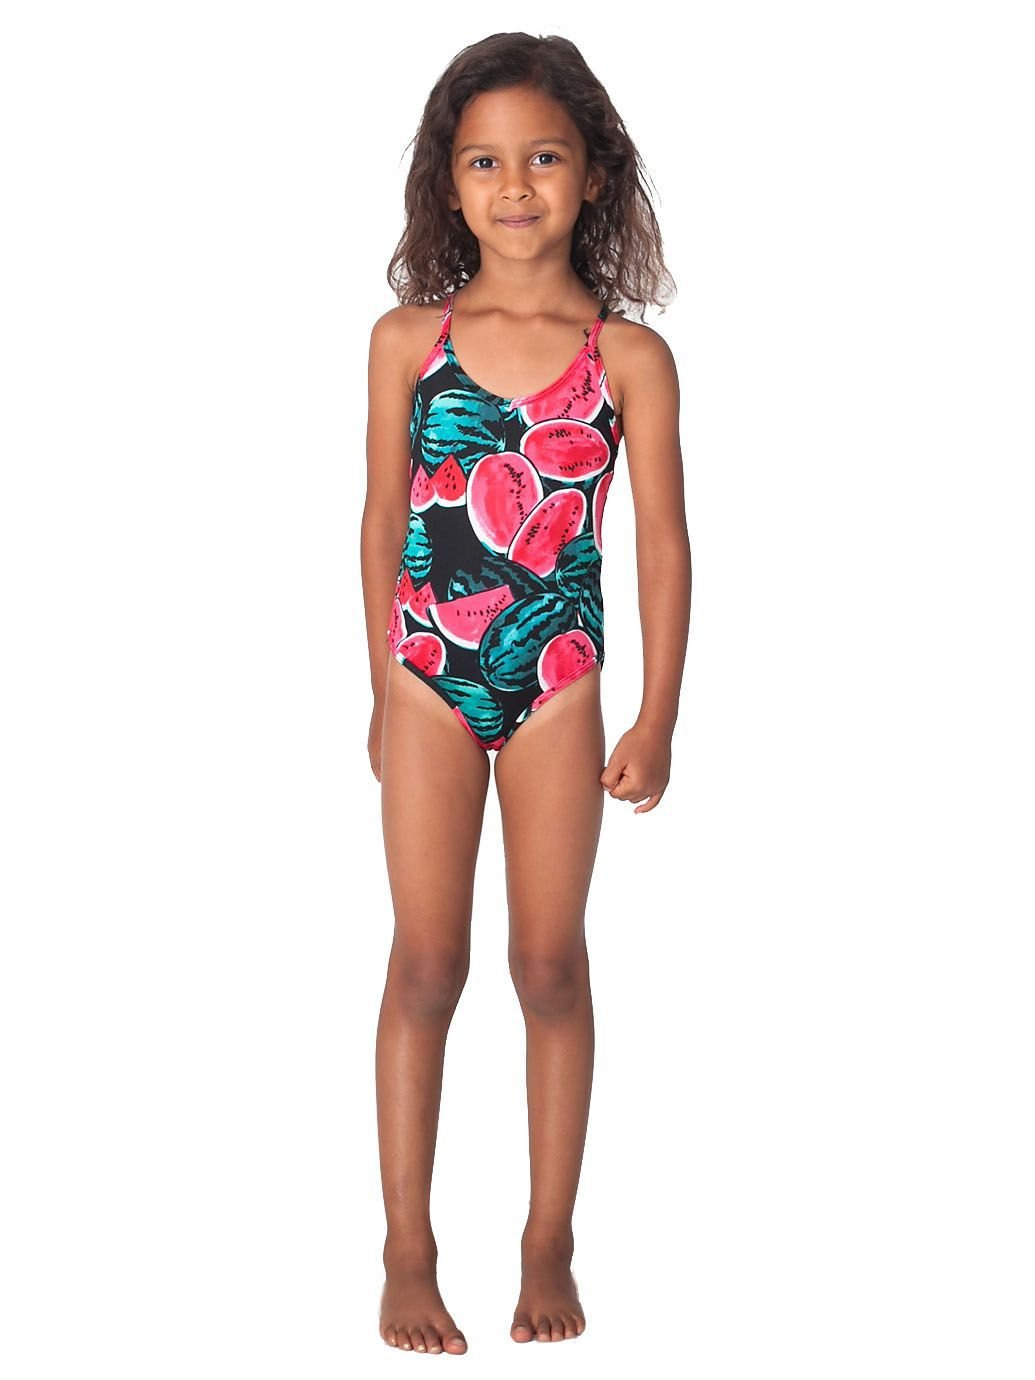 Swimsuits - Retro and vintage inspired styles for little girls - Vindie Baby